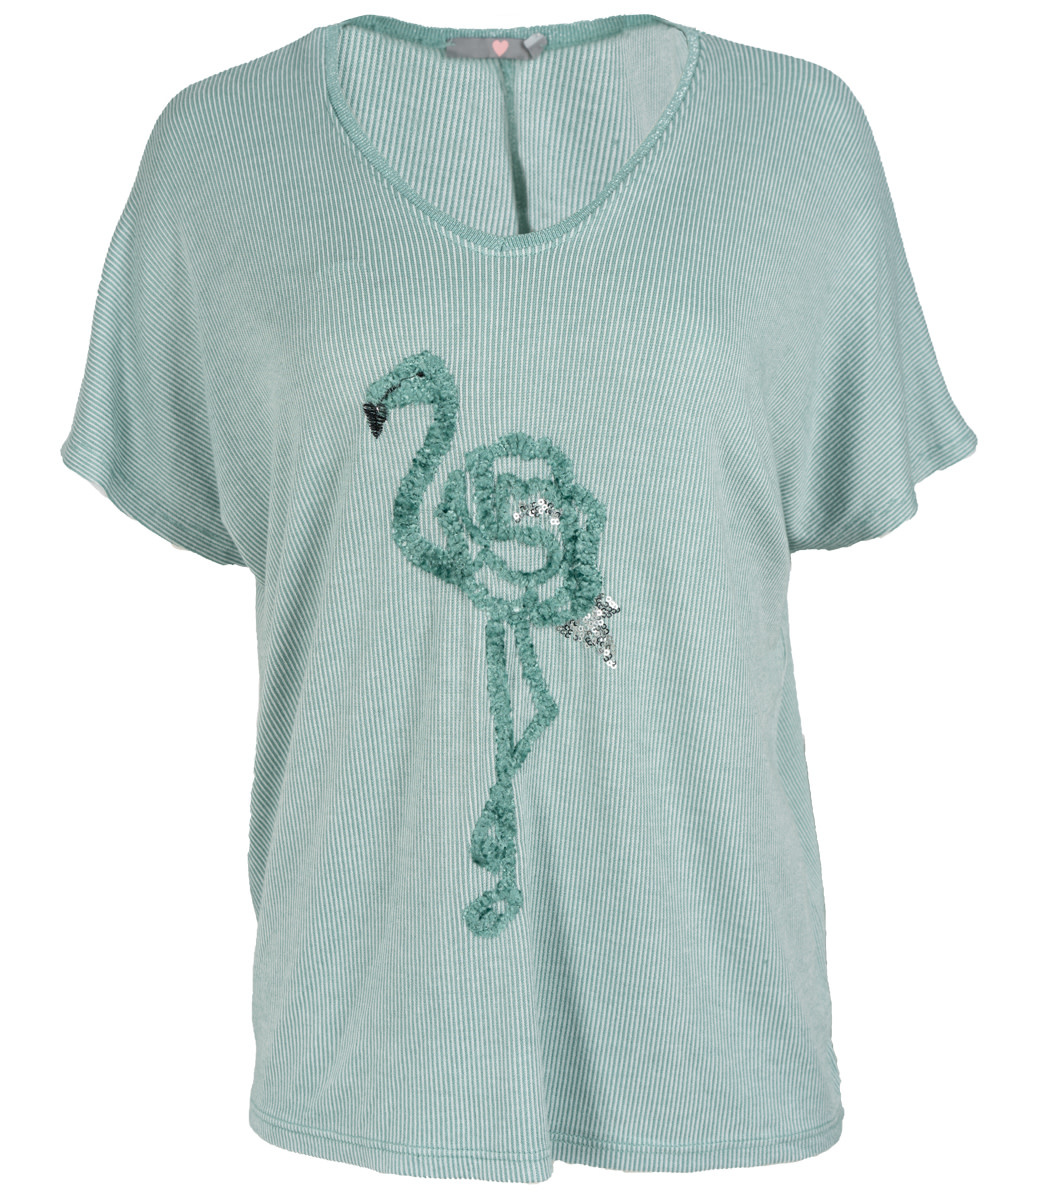 Wannahavesfashion Shirt mintgroen flamingo